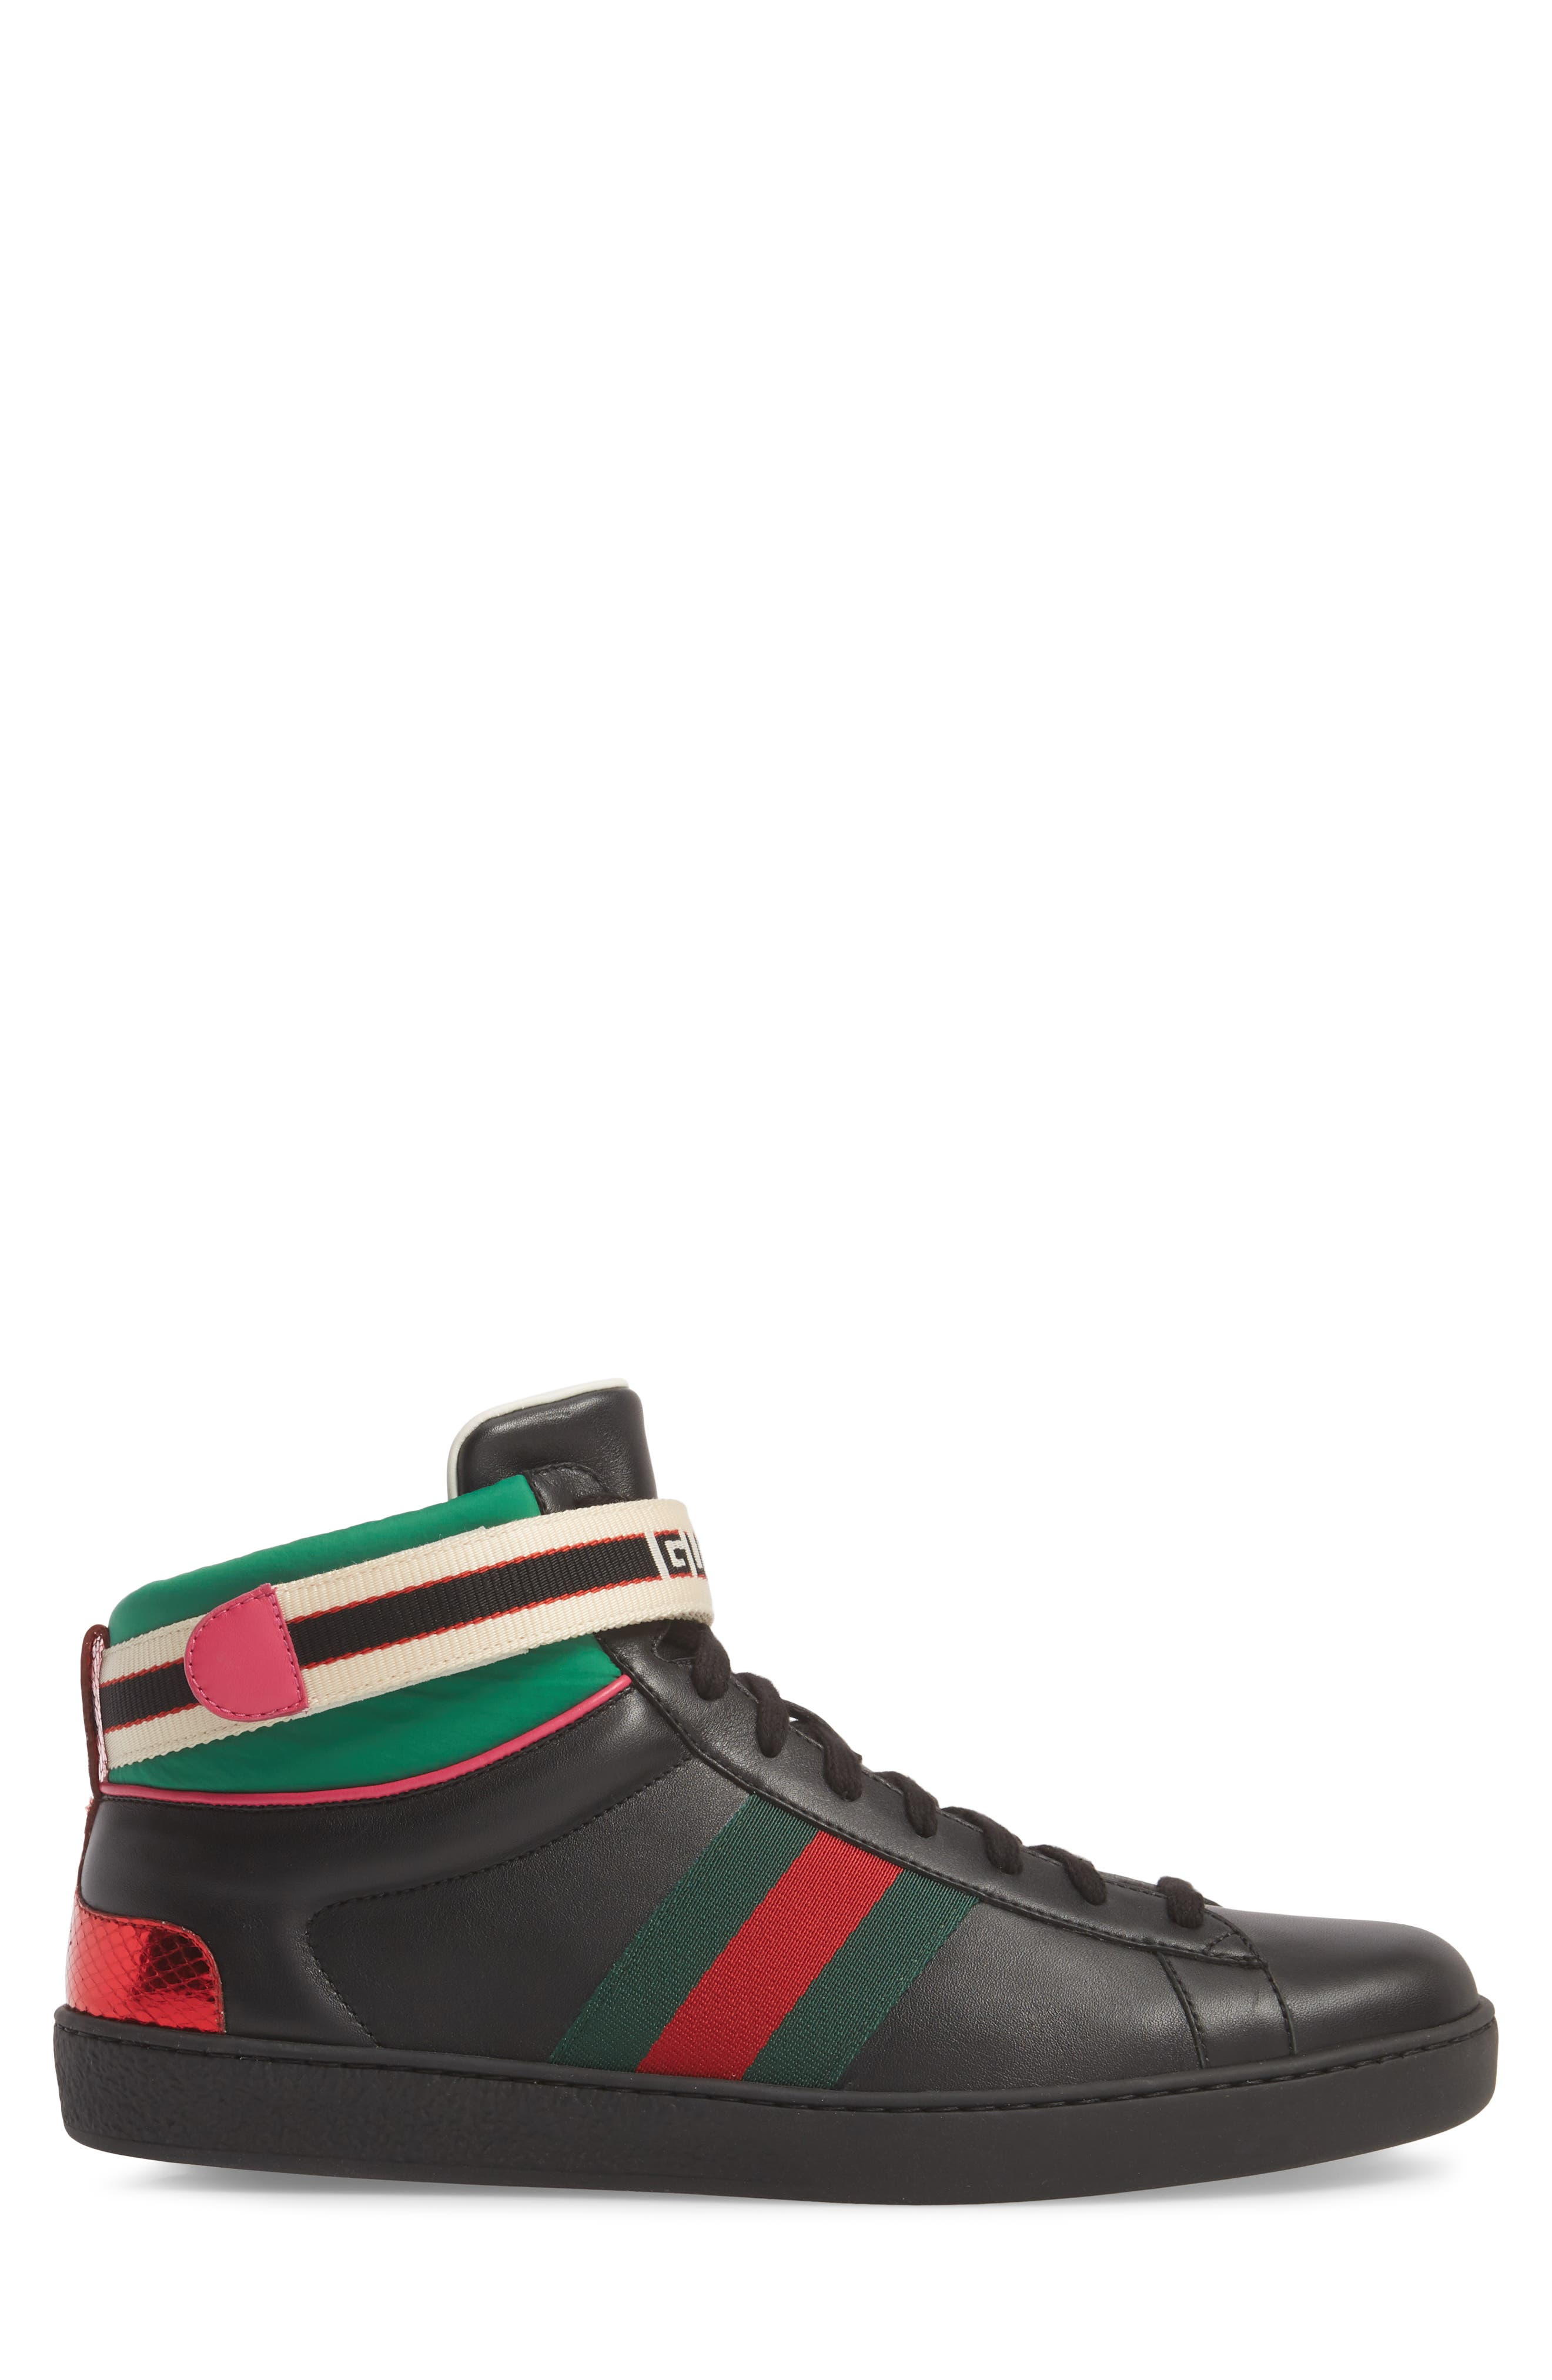 GUCCI, New Ace Stripe High Top Sneaker, Alternate thumbnail 3, color, BLACK